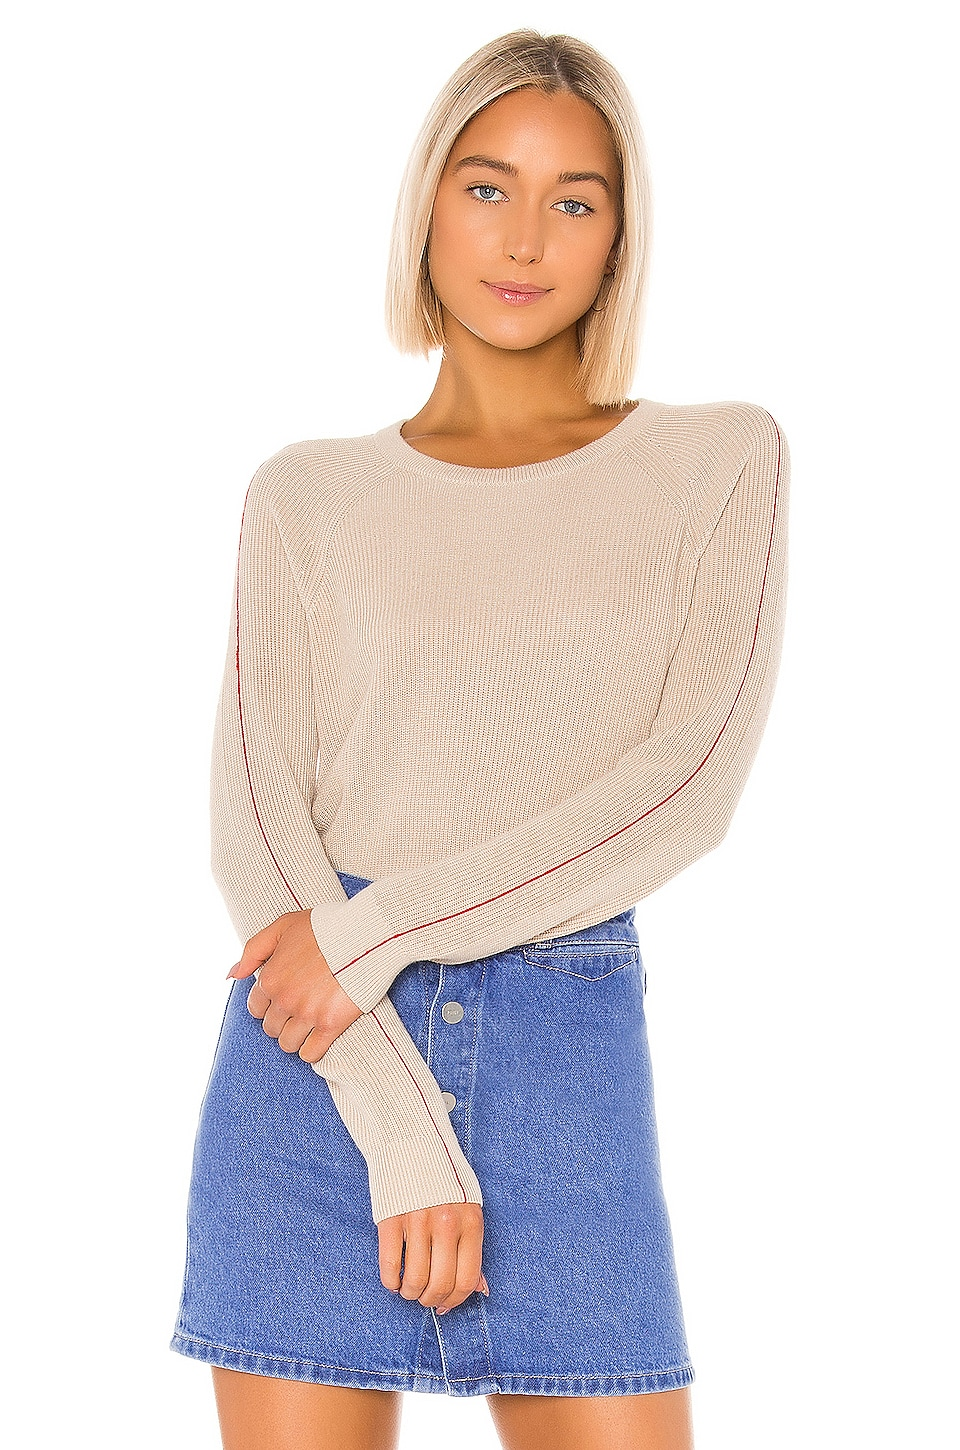 Splendid Pop Stitch Pullover in Oatmeal & Brick Pop